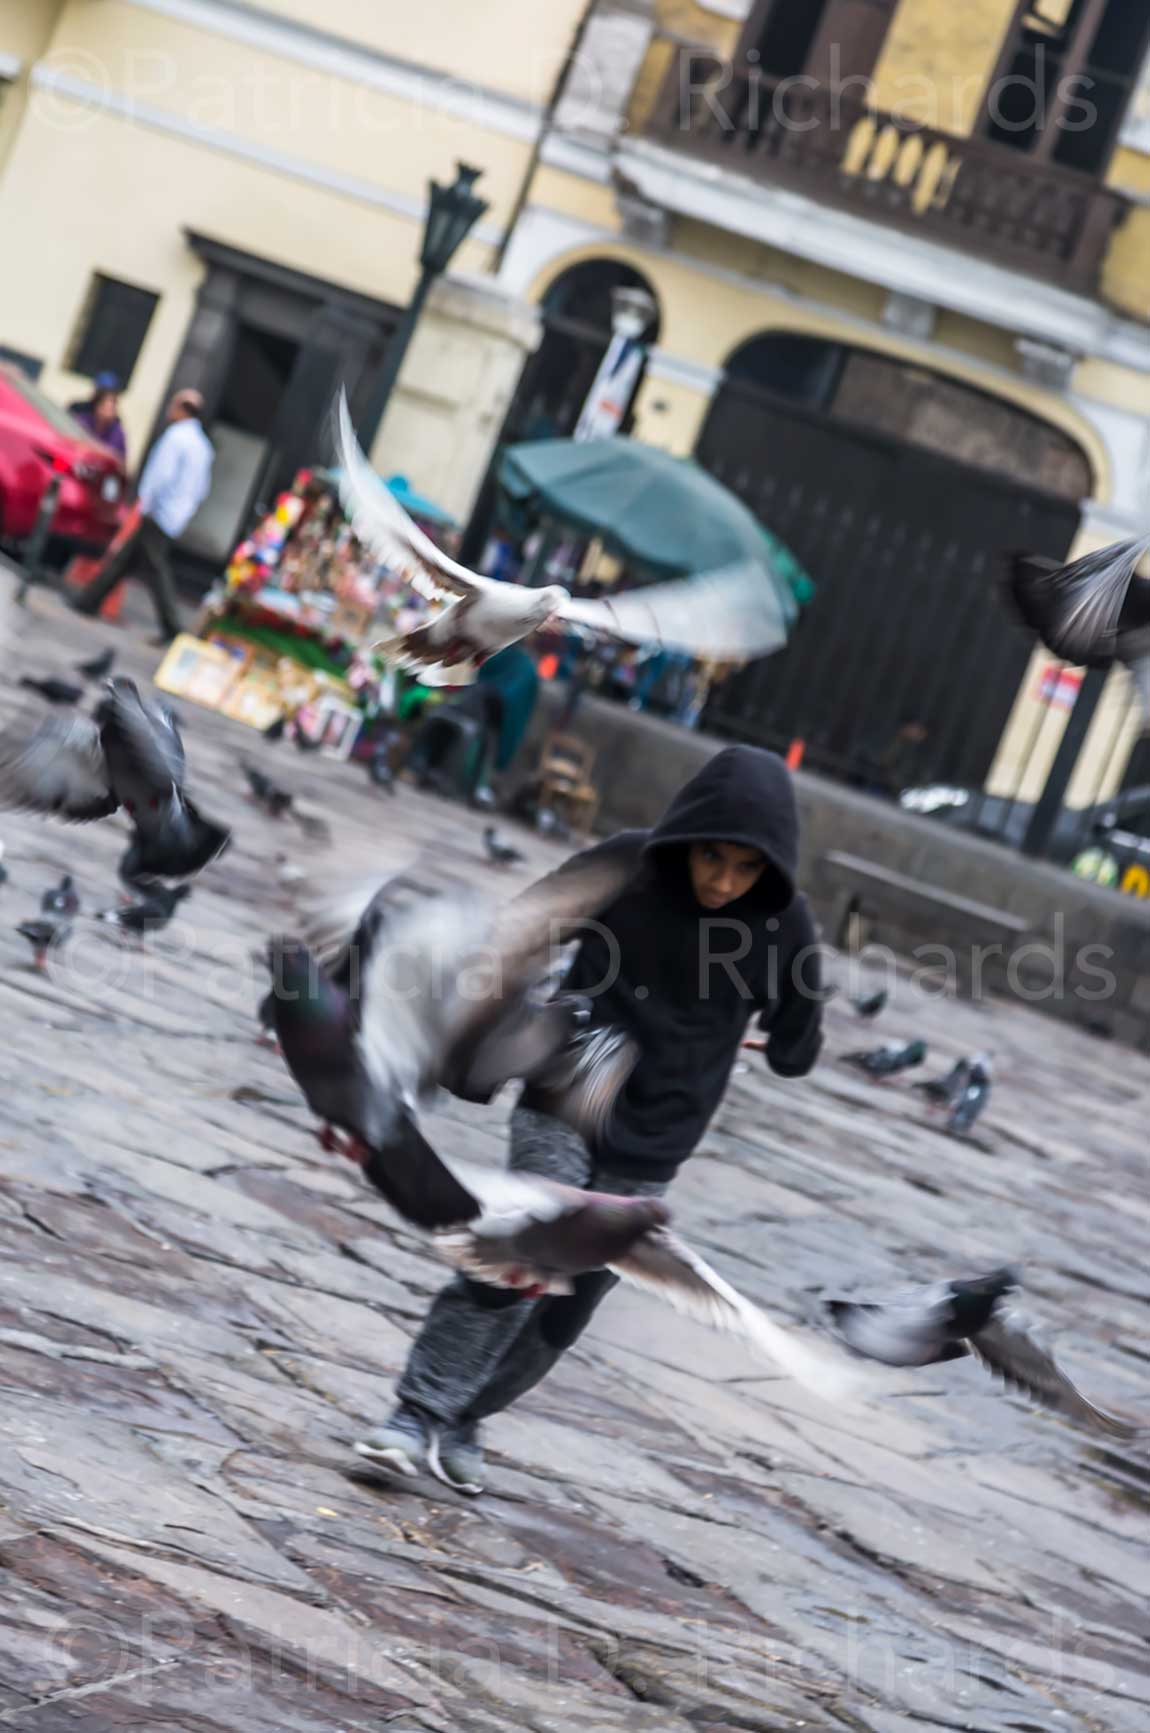 chaseing the pigeons